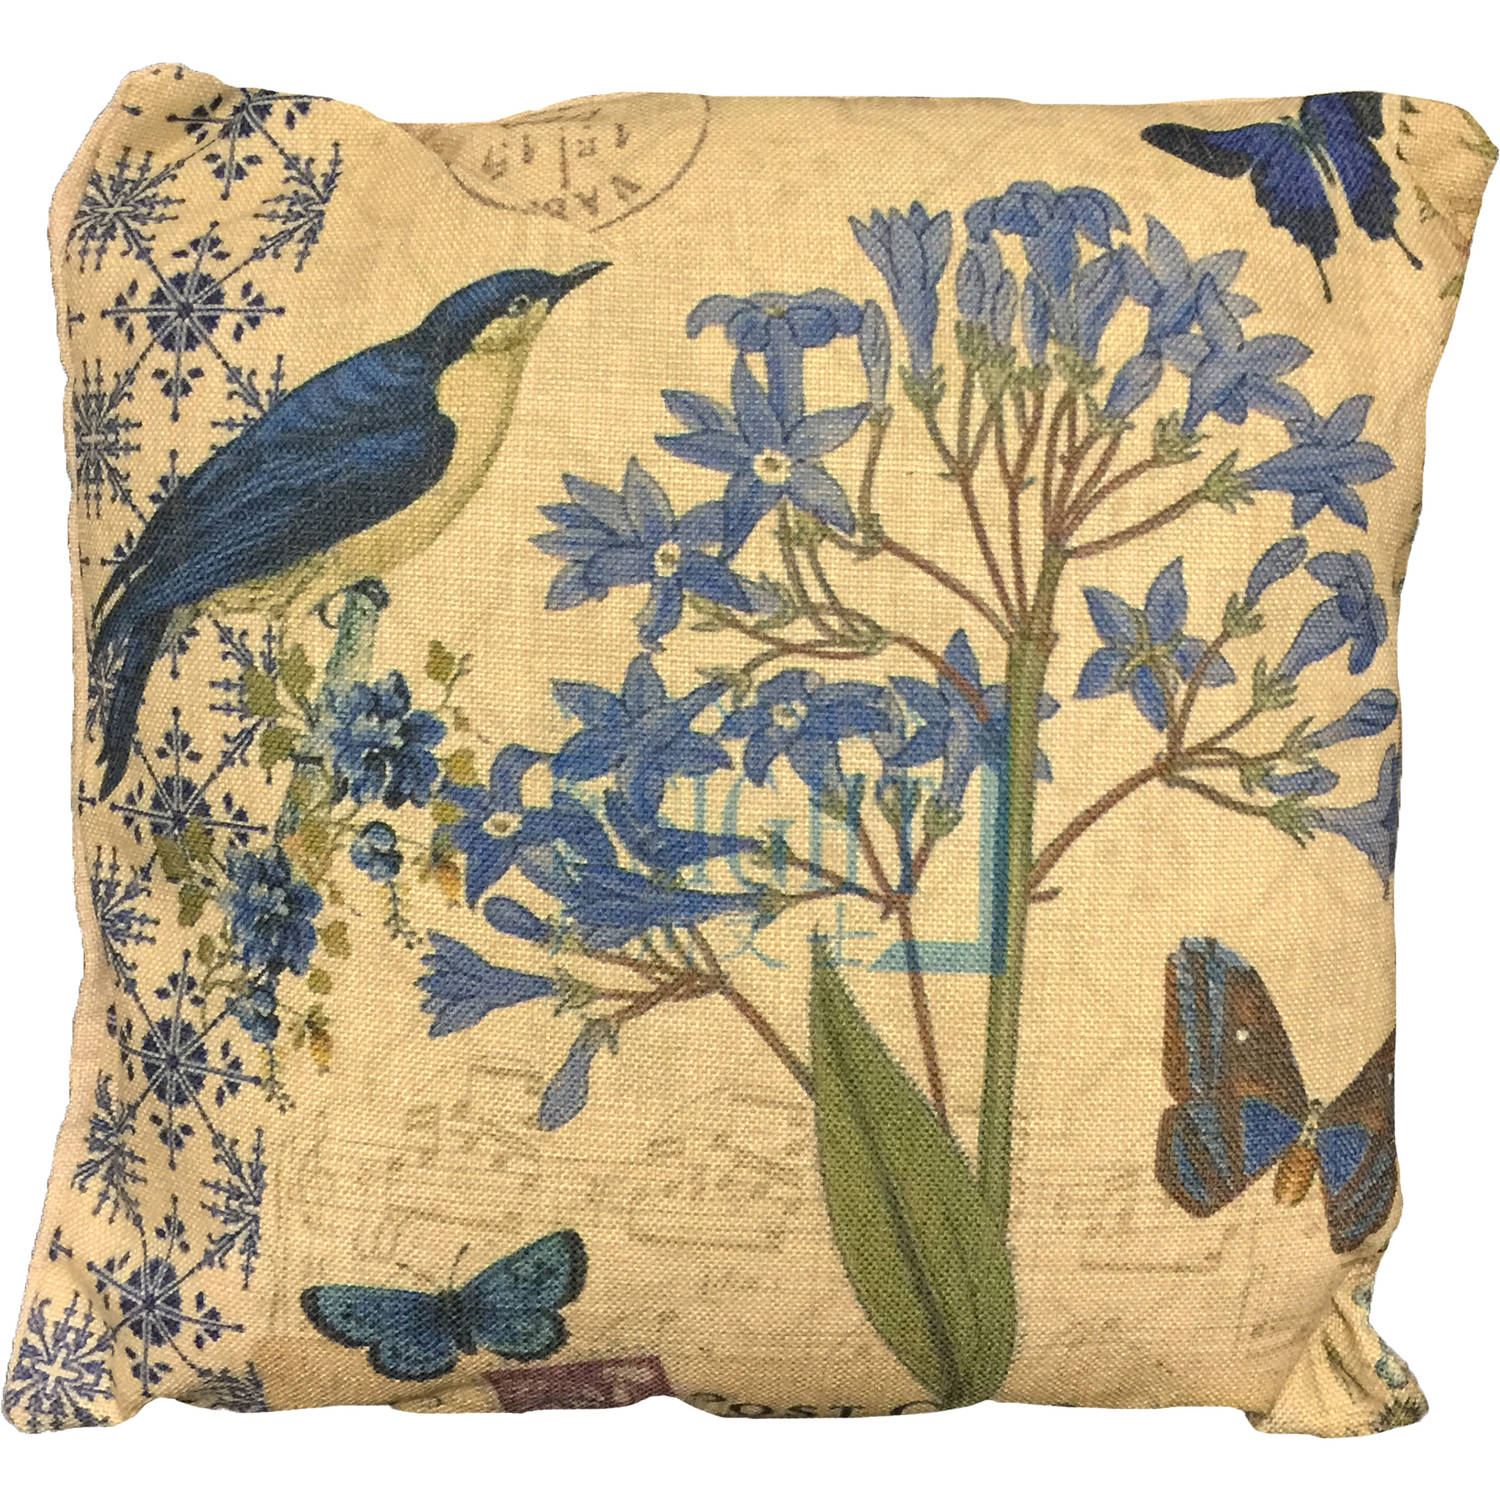 Creative Motion Cushion with Flower and Bird Design